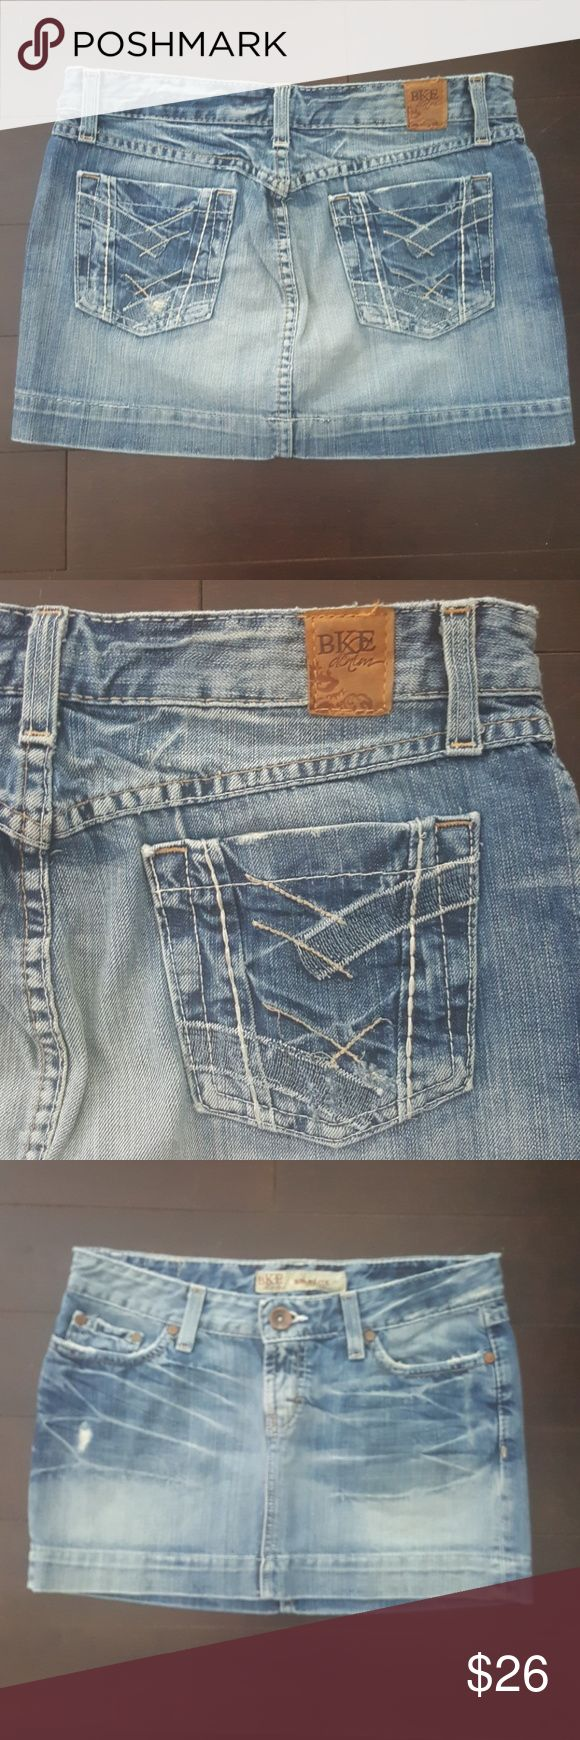 """BKE denim STARLITE distressed jean skirt size 27 BKE denim from The Buckle, distressed Starlite skirt in size 27.  10 1/2"""" front length and 13"""" back length.  Reasonable offers always welcome! BKE Skirts"""